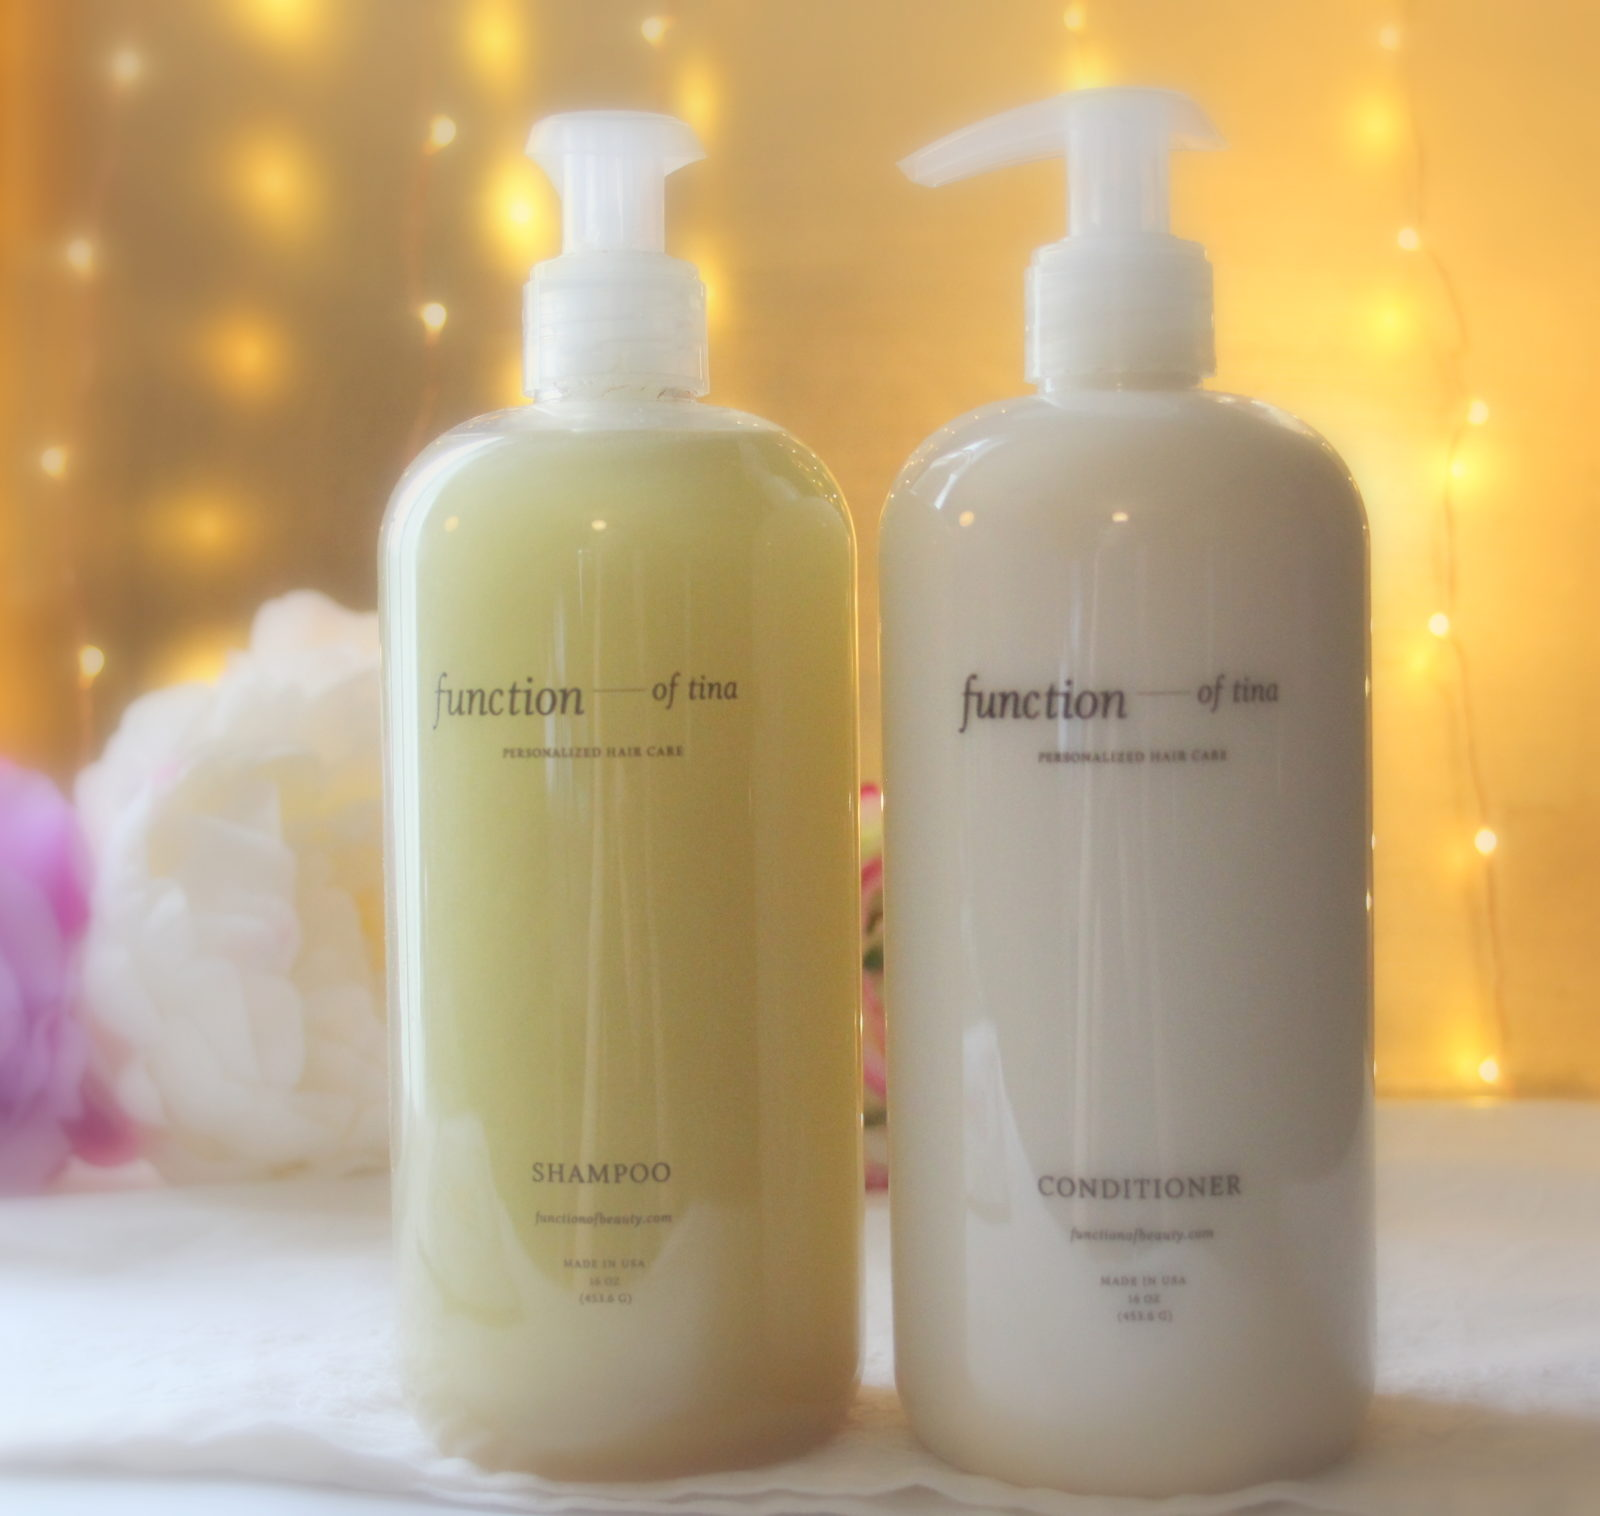 Function of Beauty – Personalized Shampoo and Conditioner